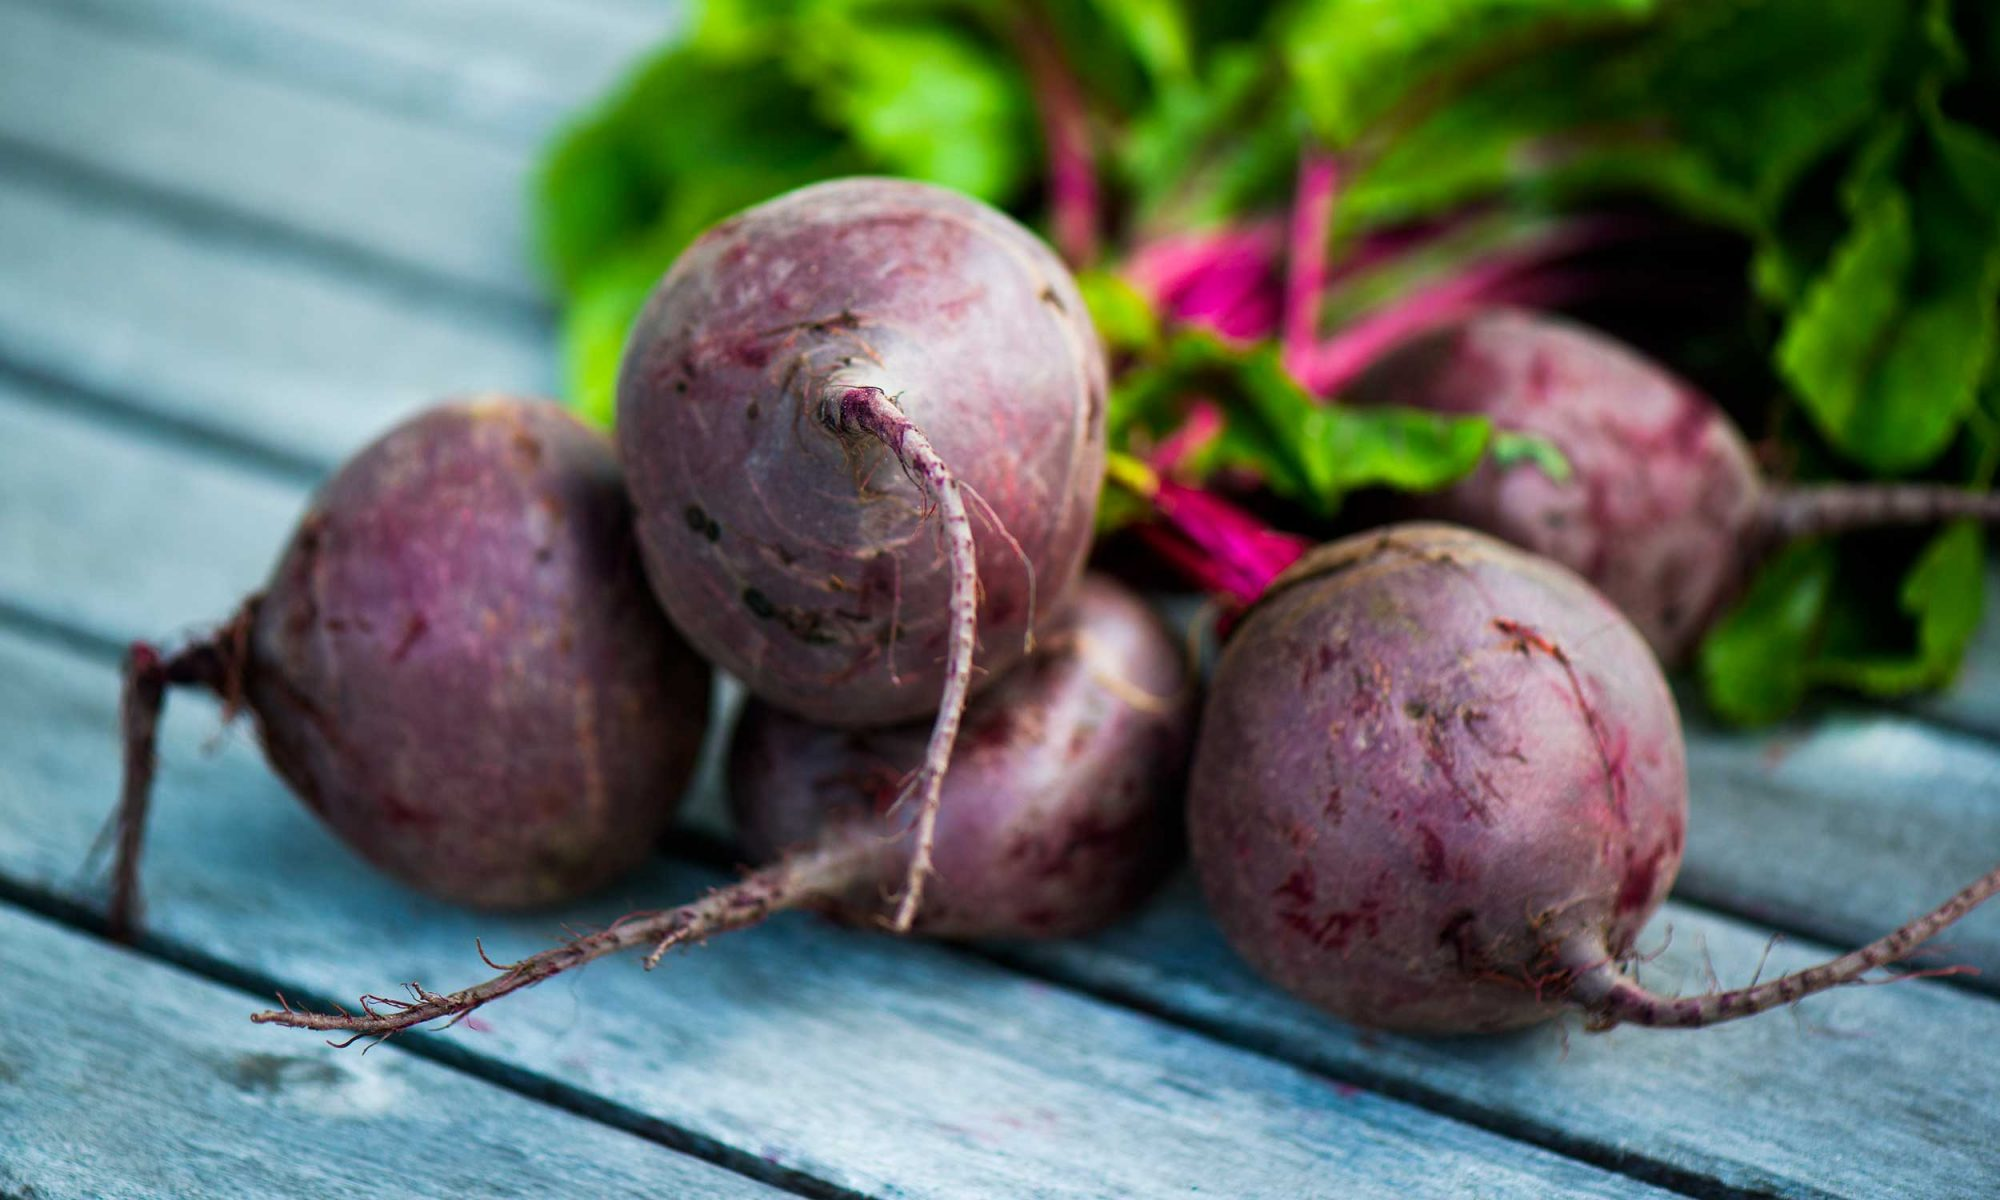 bunch of beets on wooden table